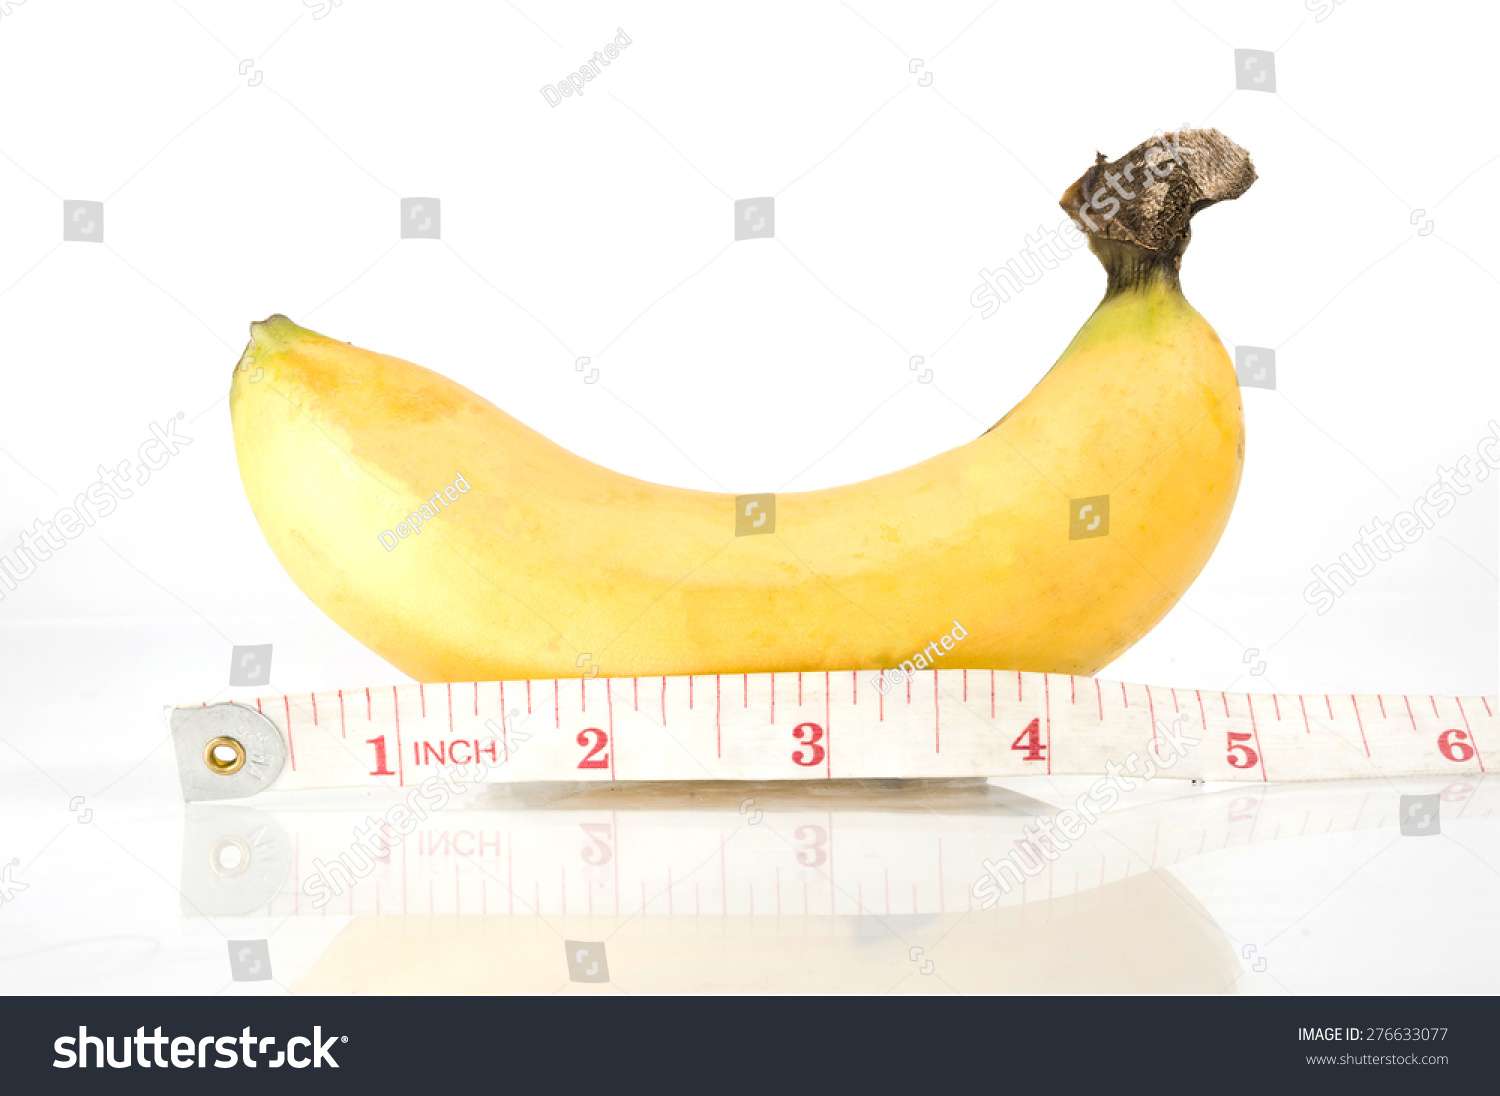 Ripen Yellow Banana Measuring Measurement Tape Stock Photo 276633077 - Shutterstock-9225